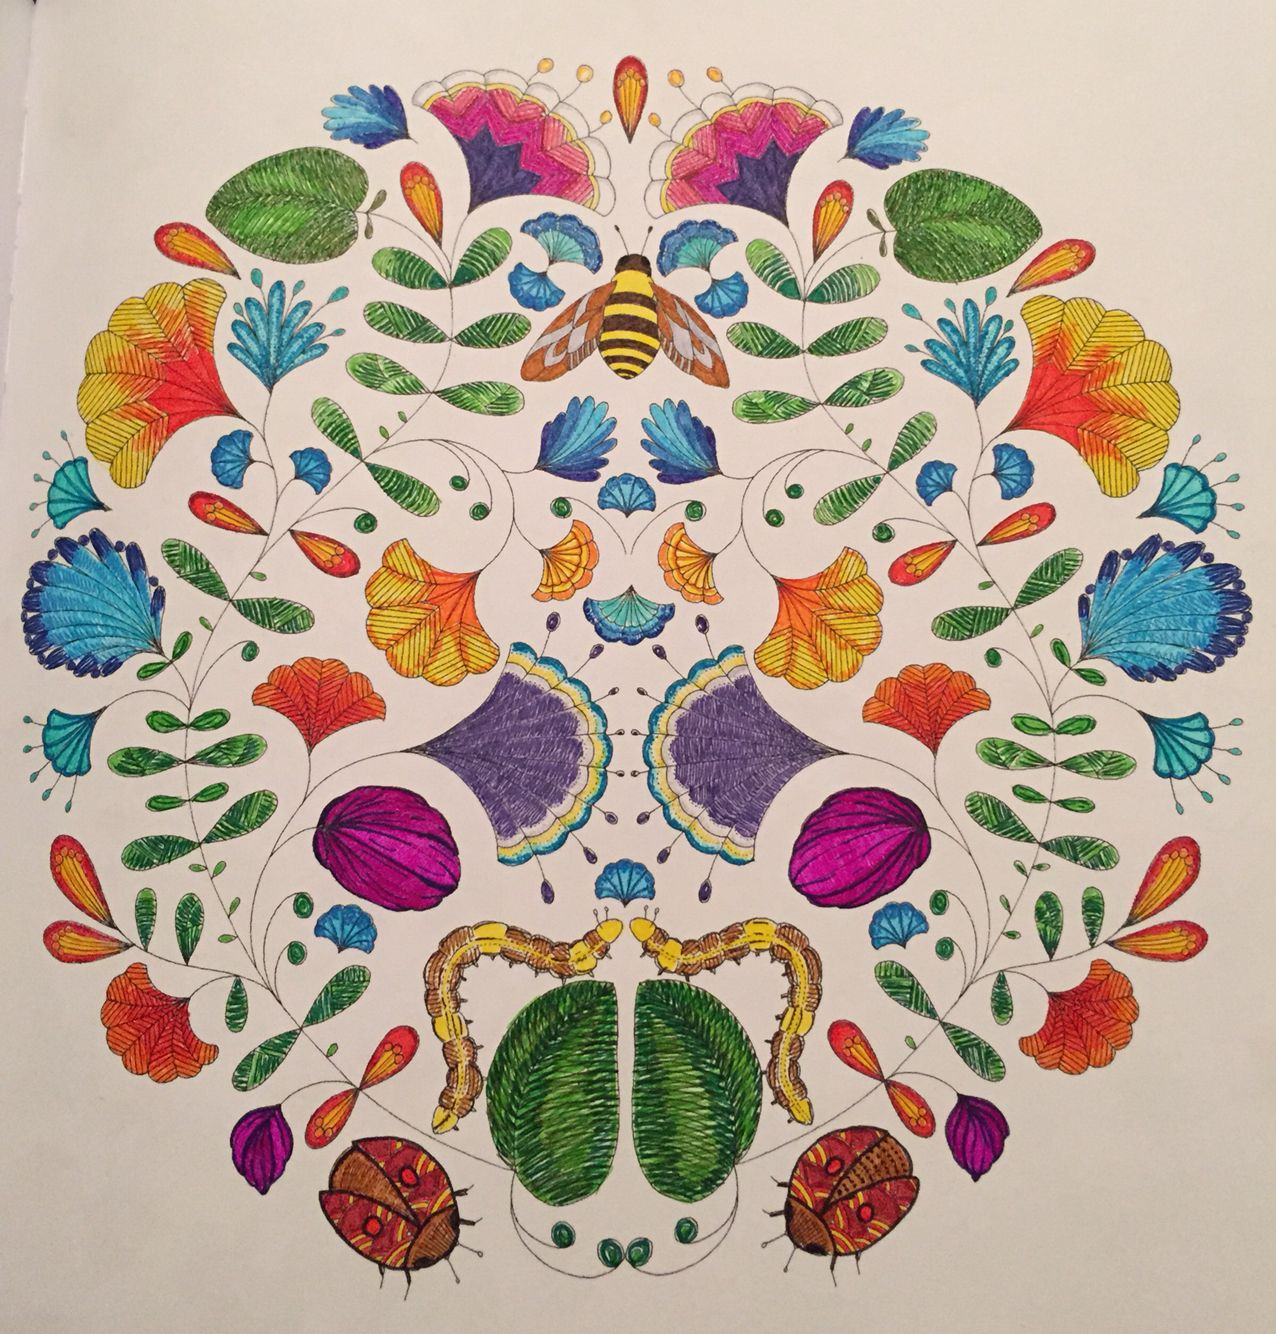 My first colouring in - adult colouring book Animal Kingdom by Millie Marotta